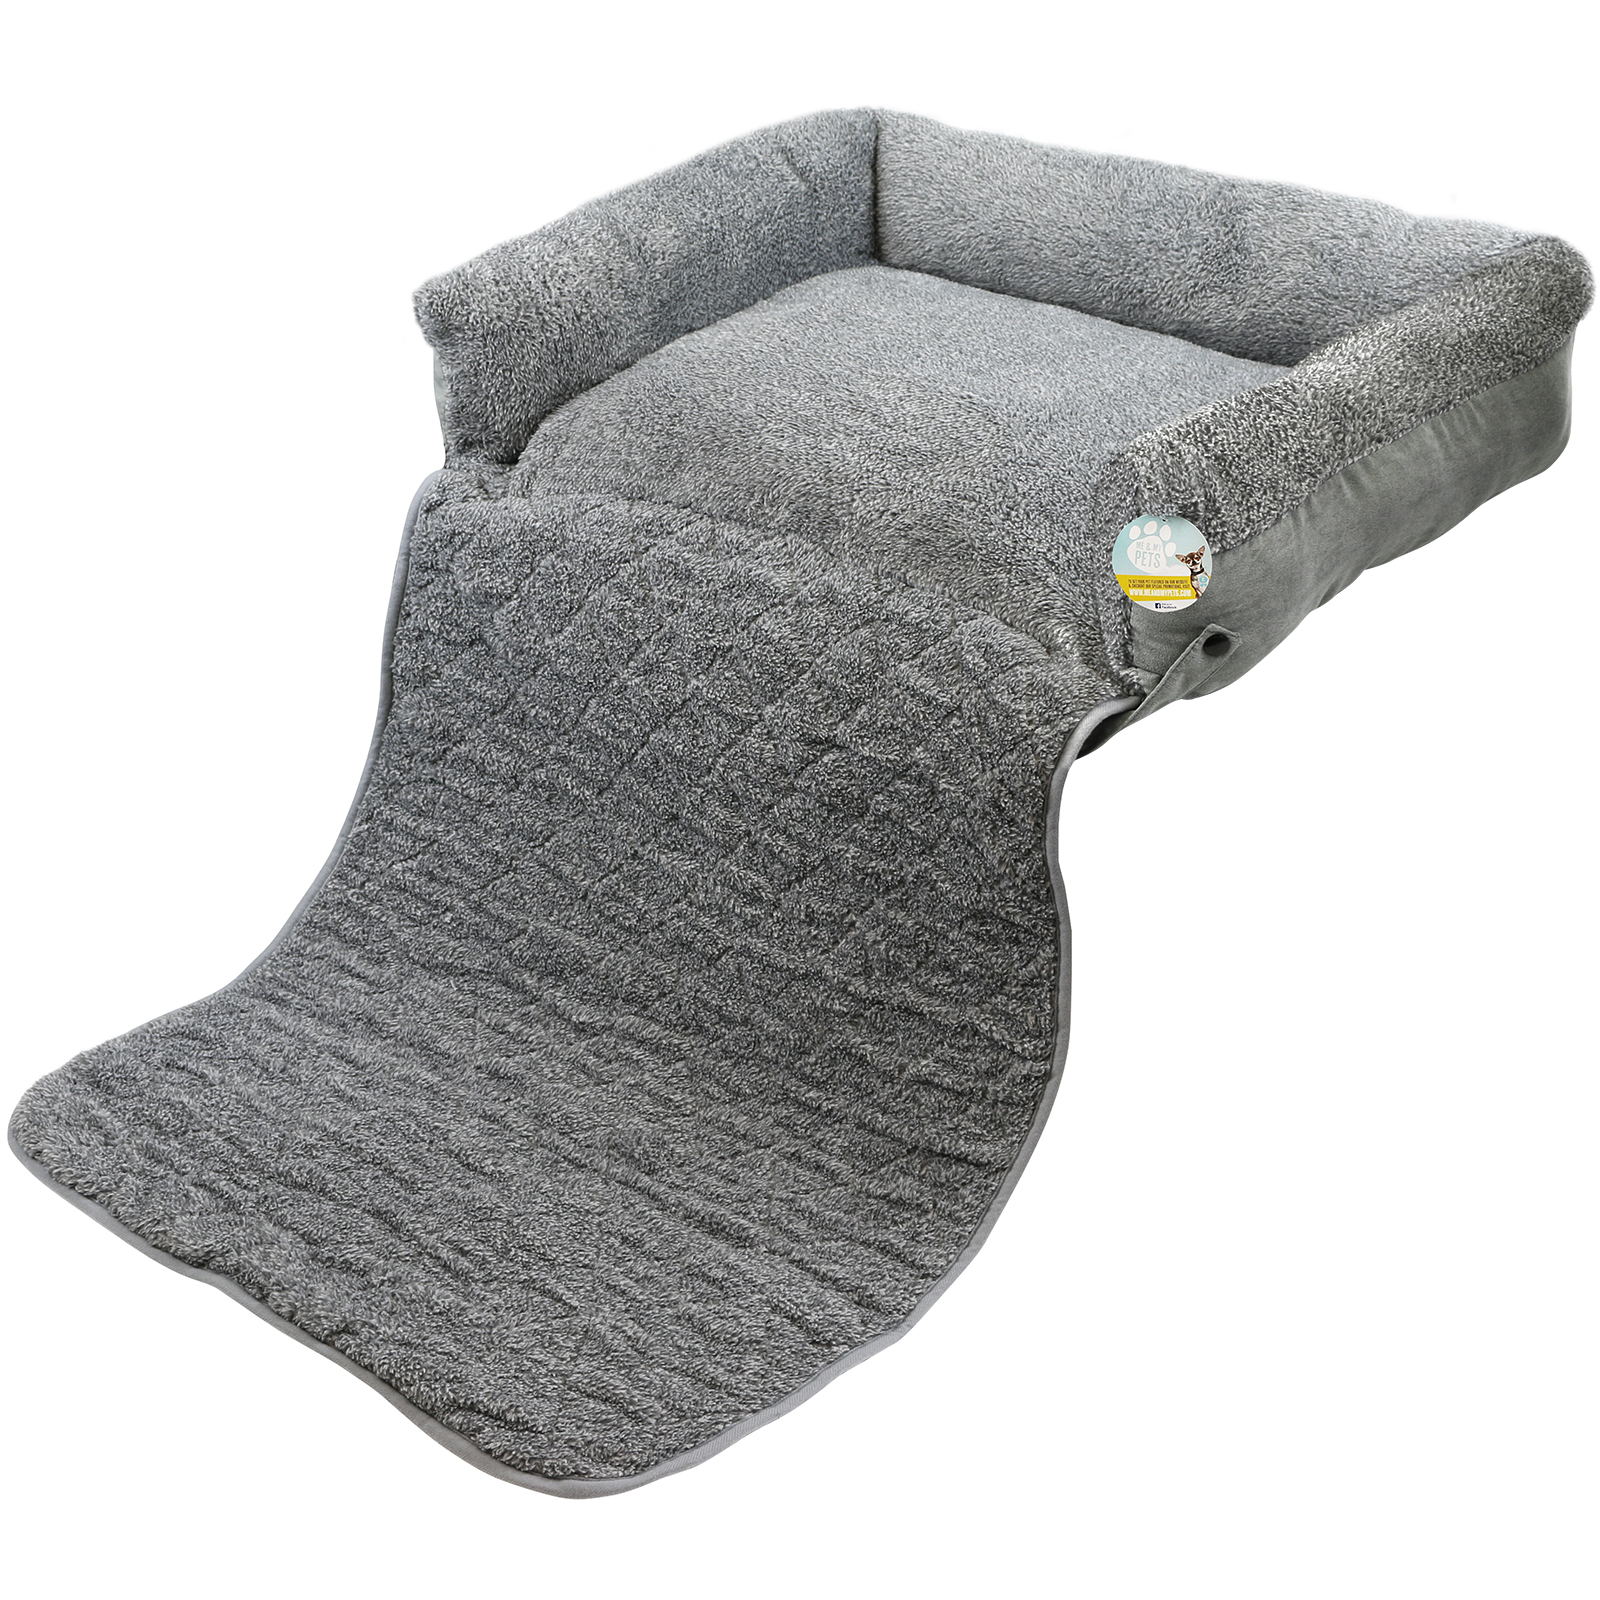 sofa style pet bed furniture protector broyhill sleeper sofas me and my quilted grey fleece fold out cat dog